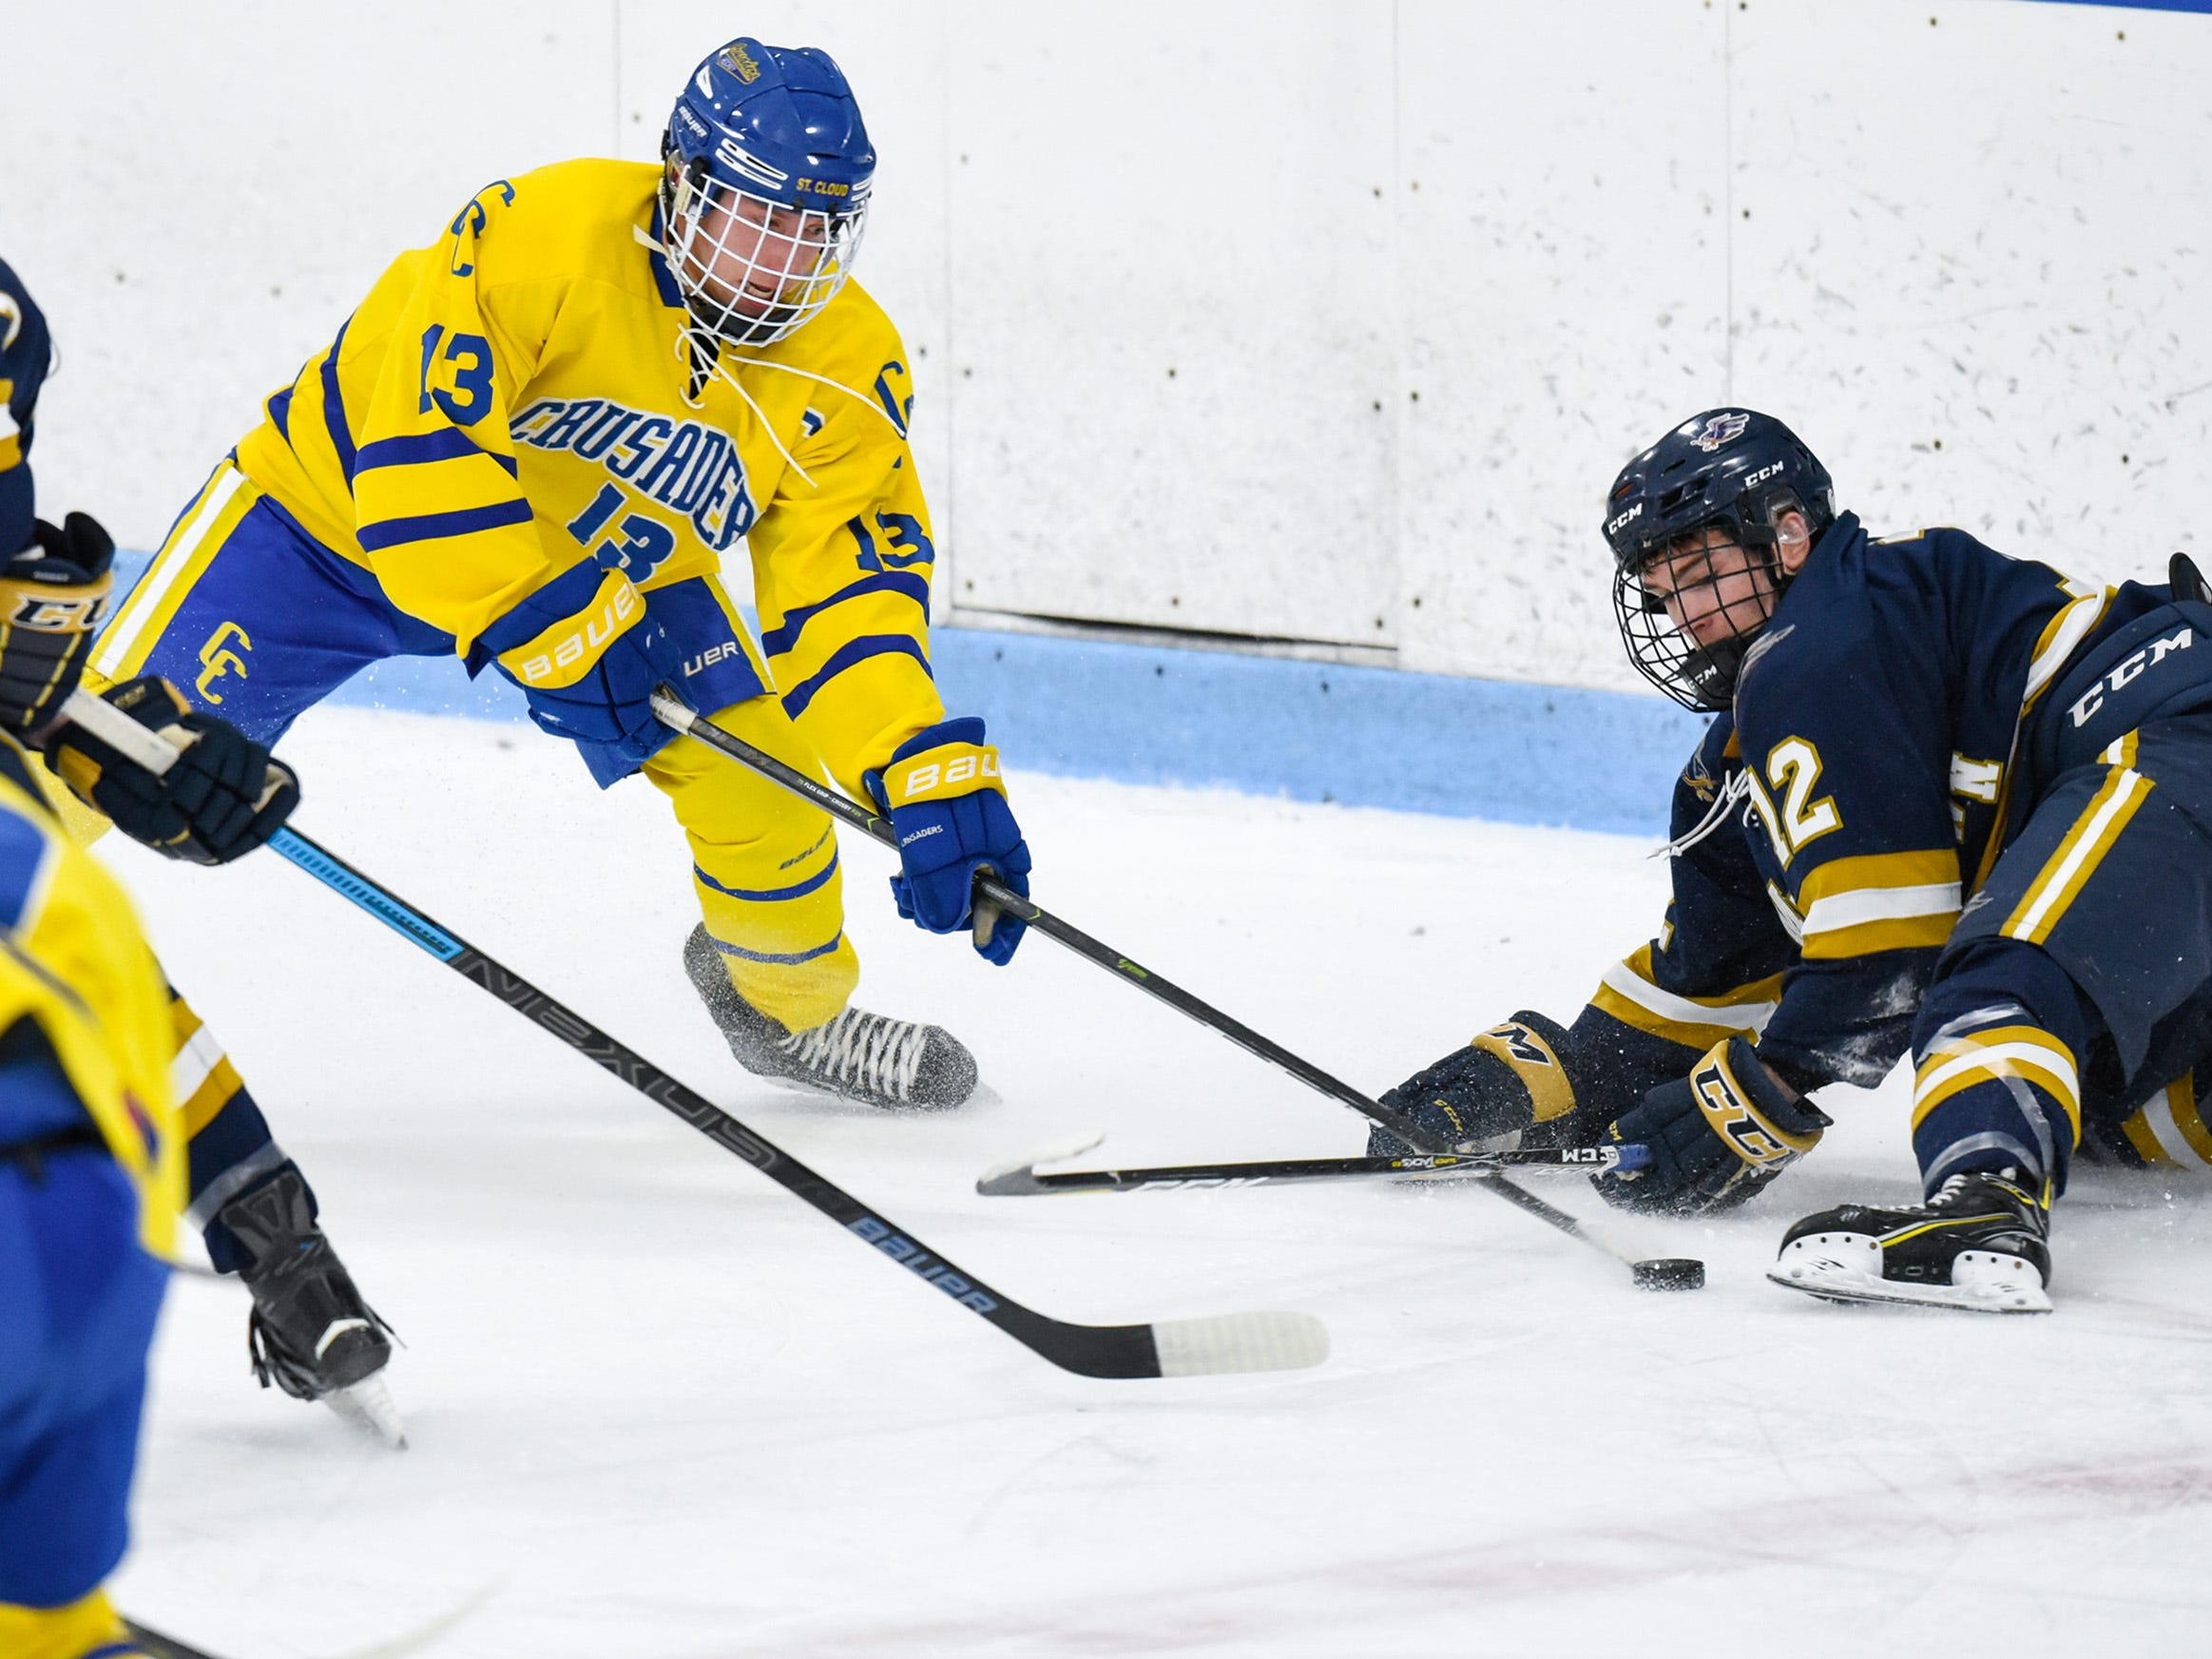 St. Cloud Cathedral's Talon Lenzen moves the puck past Hermantown's Ryan Dobbs during the first period Friday, Jan. 4, at the MAC in St. Cloud.